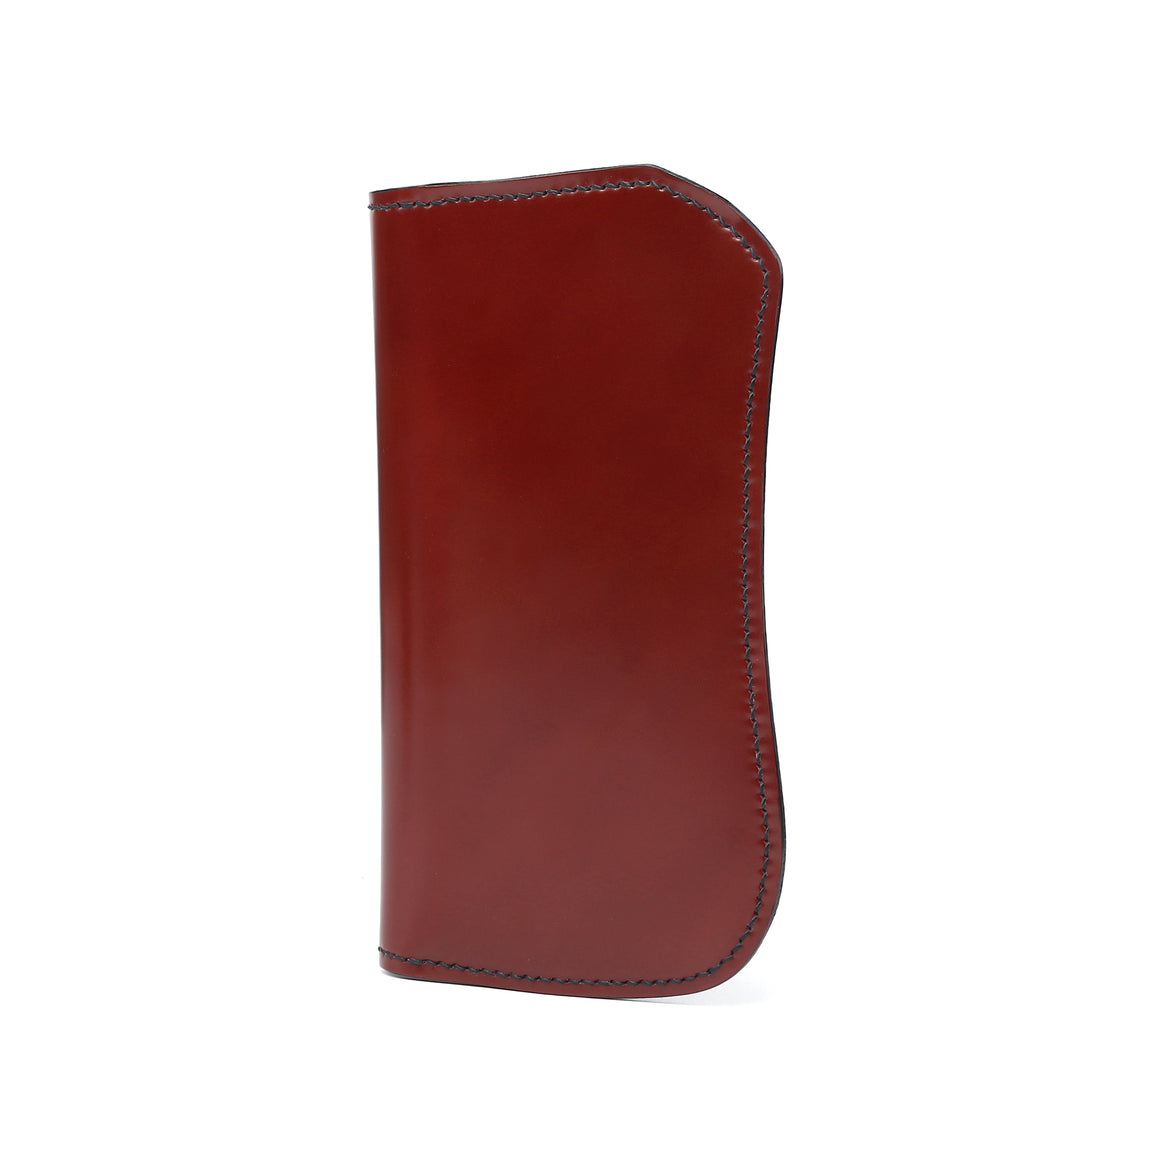 The Flat Head Semi-long Cordovan & Cowhide With Lizard quarter Wallet (Whisky)